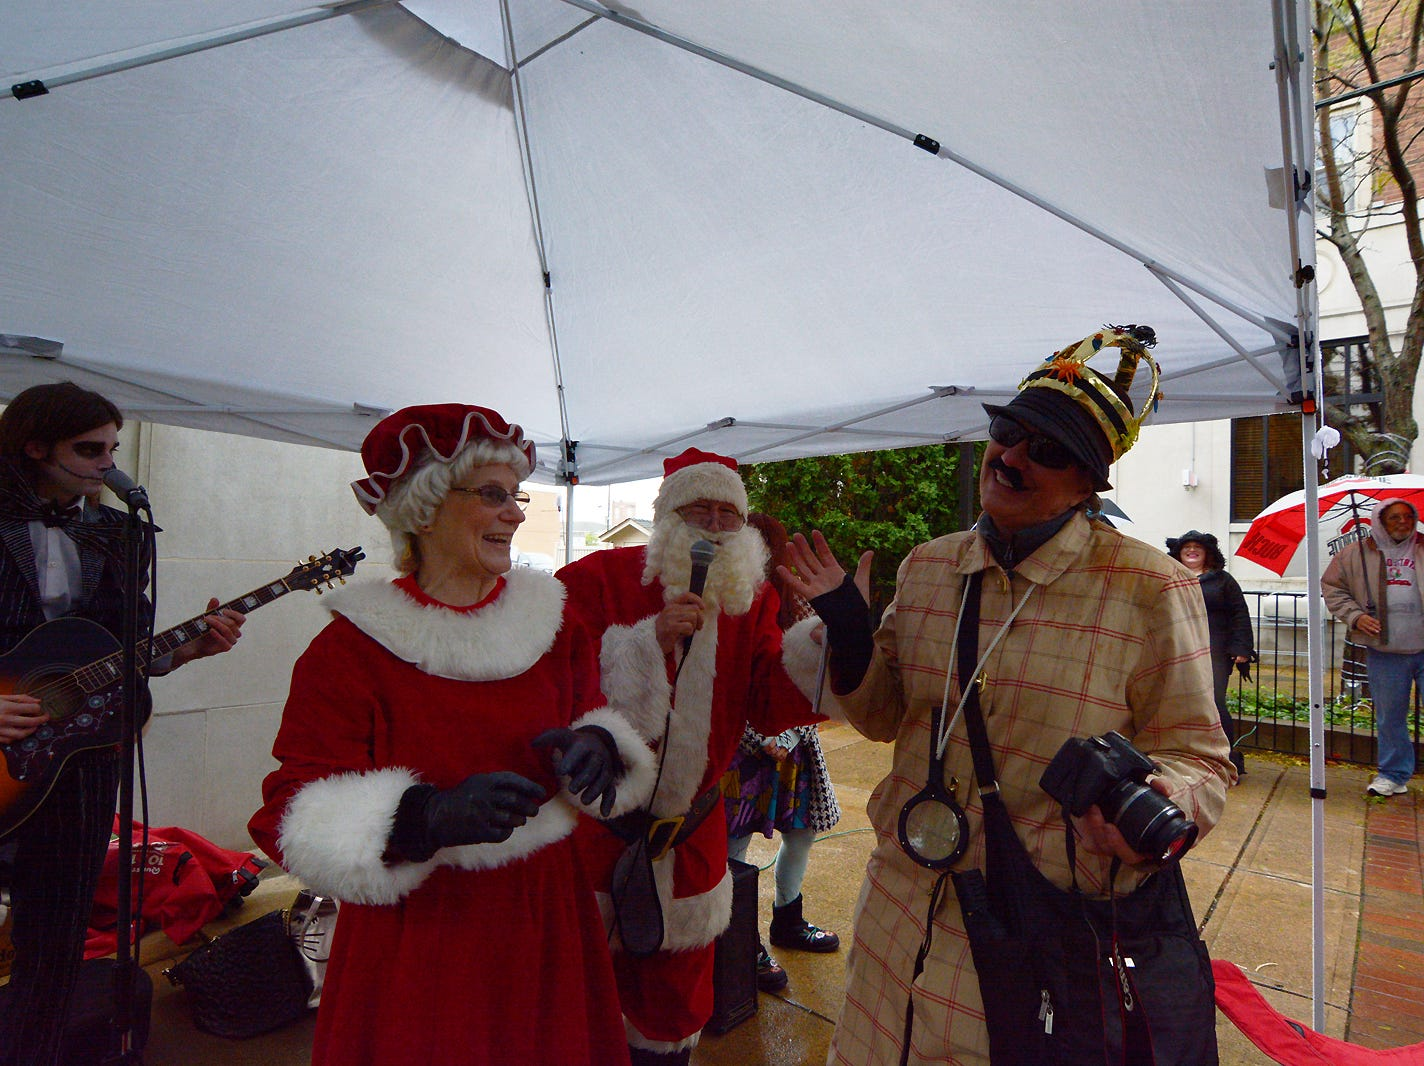 Debbie Nixon was chosen as King of the Lancaster Holloween Parade Saturday evening by Santa and Mrs. Claus.